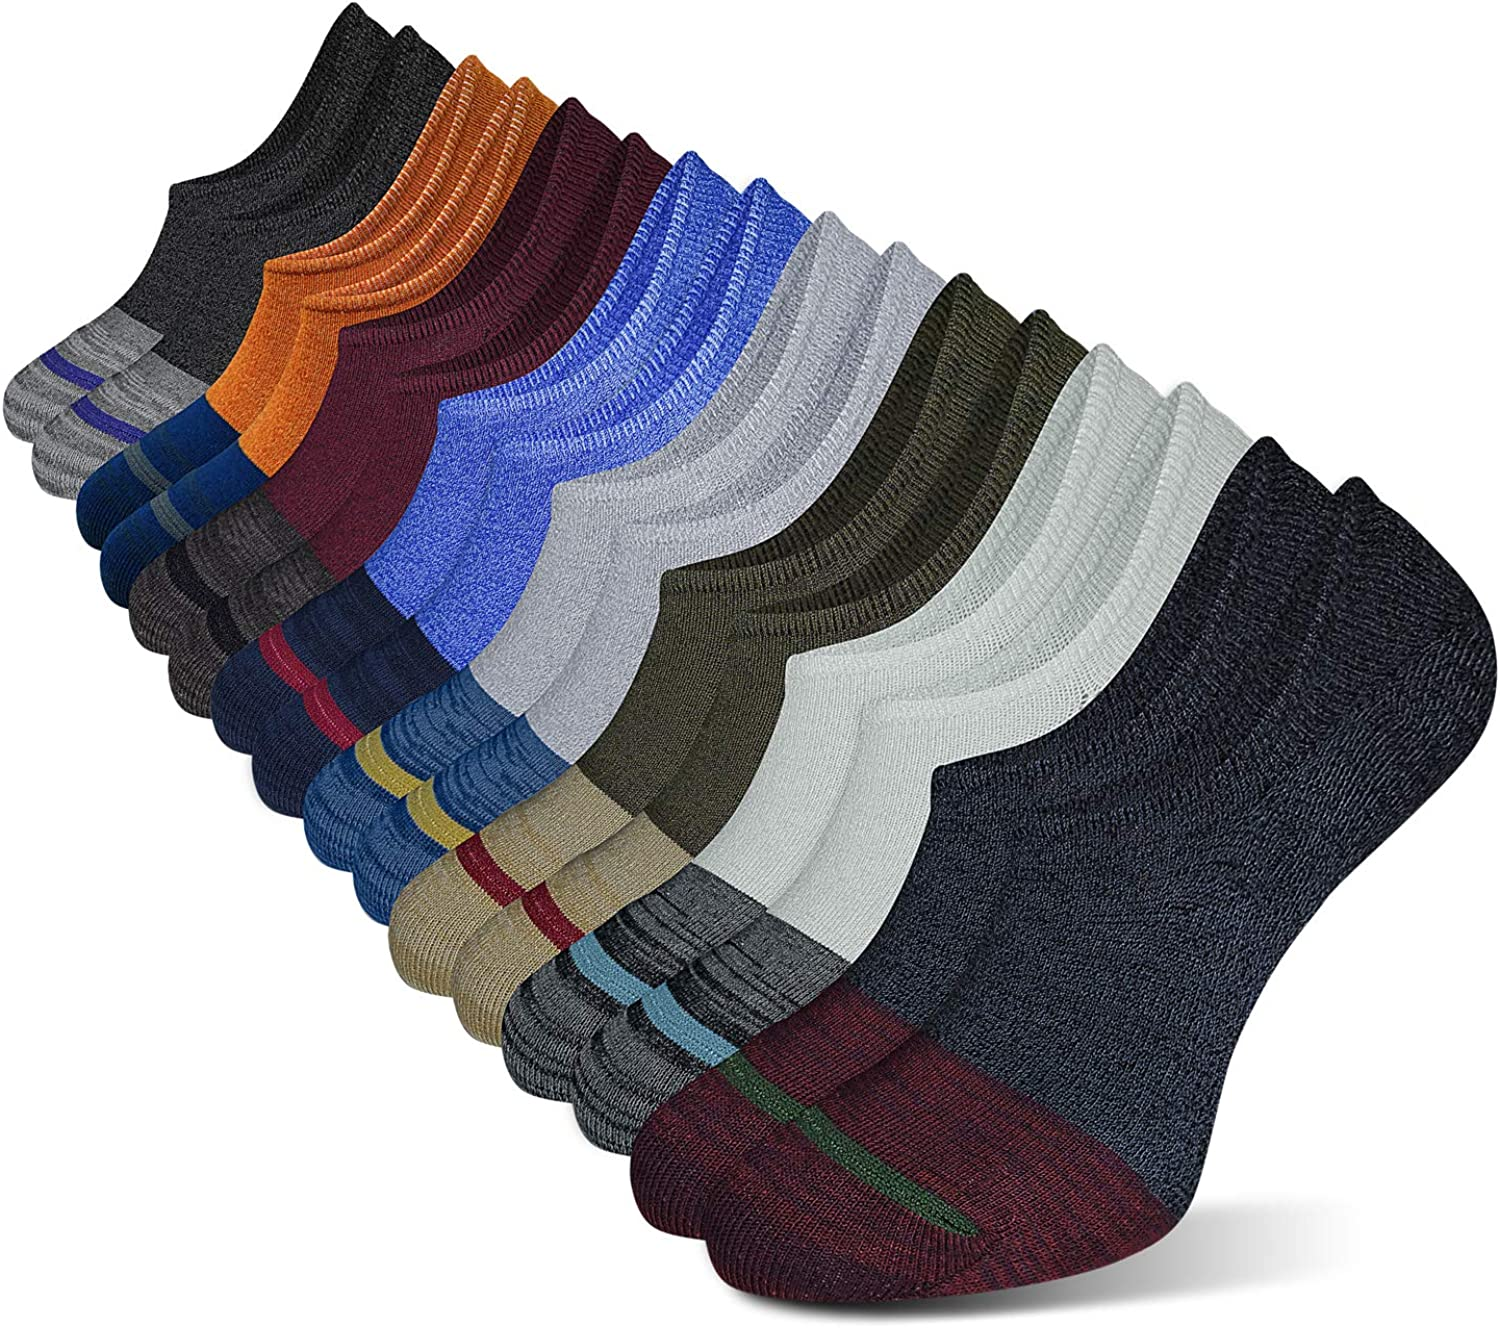 Hidden Mens Ankle Low Cut No Show Cotton Non Slip Socks Casual Dress Liner Lot